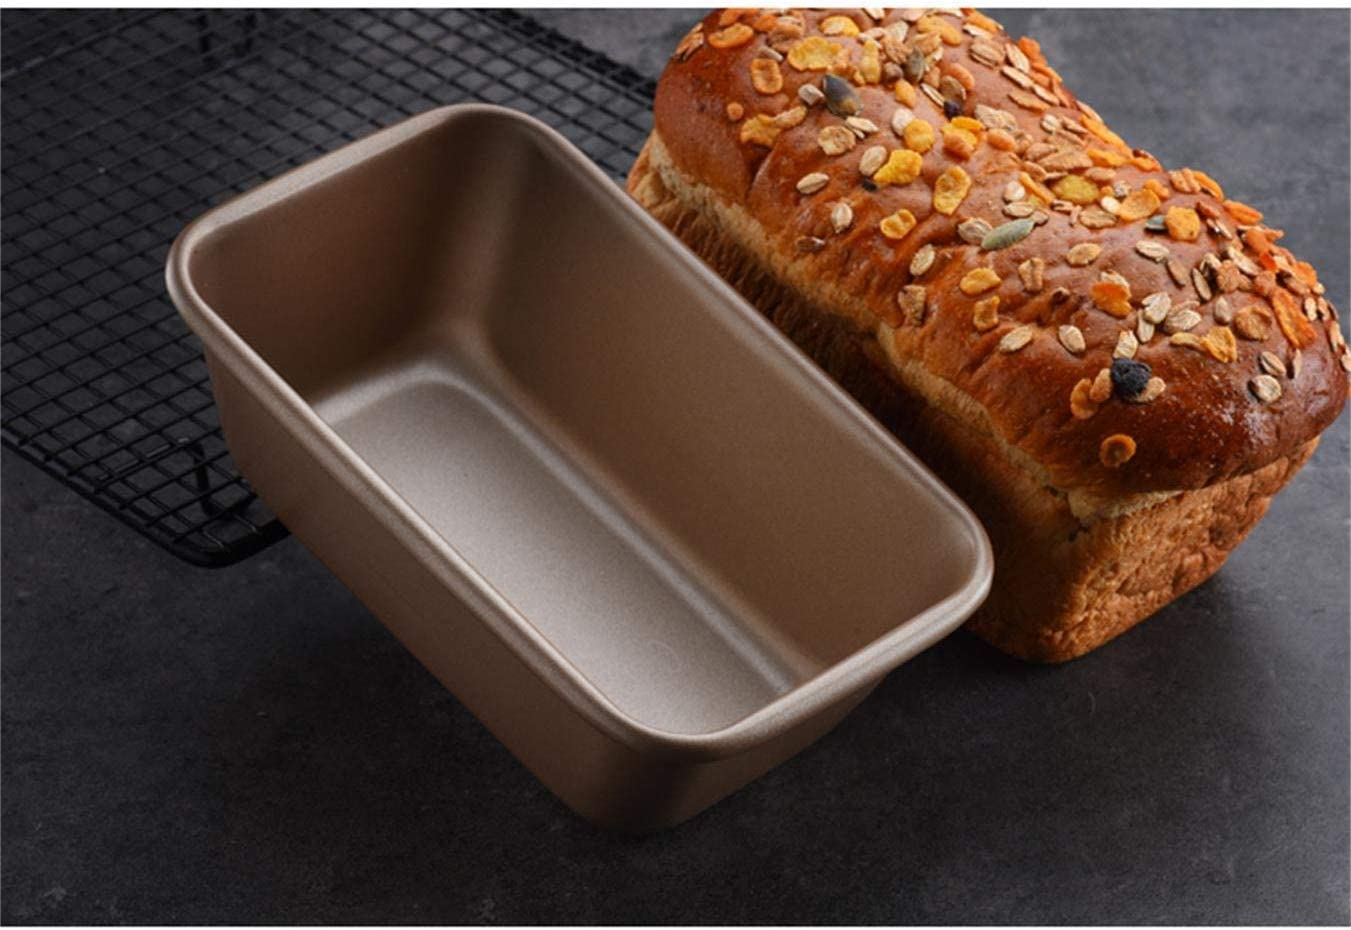 Yesland 2 Pack Loaf Bread Pan Nonstick Carbon Steel Baking Bread Pan Rectangle loaf pan Non Stick loaf Cake pan 9.45 x 5.7